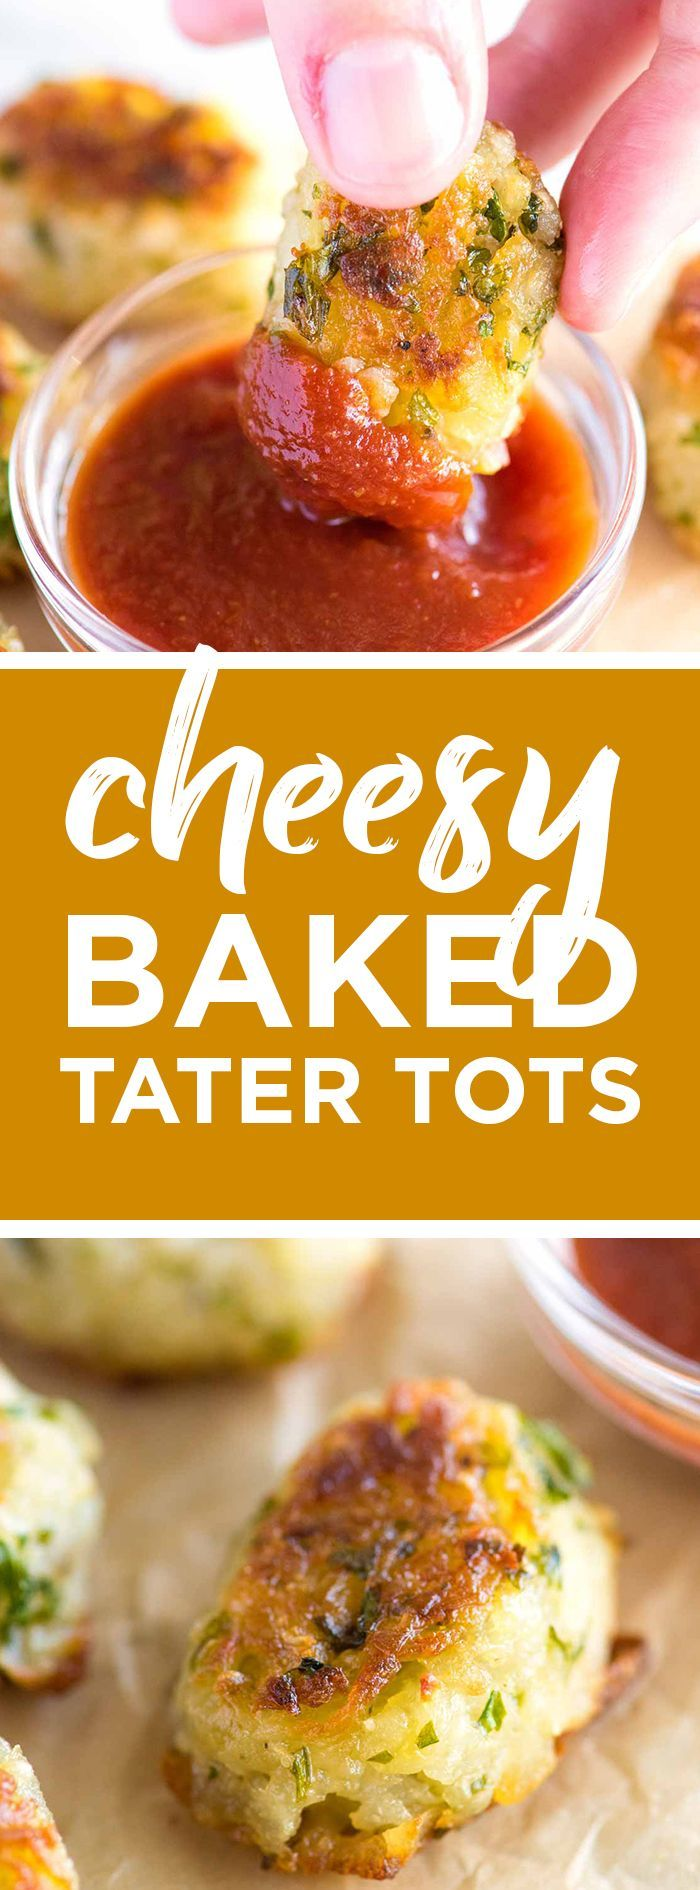 How to Make the Best Homemade Tater Tots -- These homemade tater tots are baked, not fried so they are easy. Say goodbye to that frozen bag! #potato #easydinner #vegetables #kidfriendly #homemade